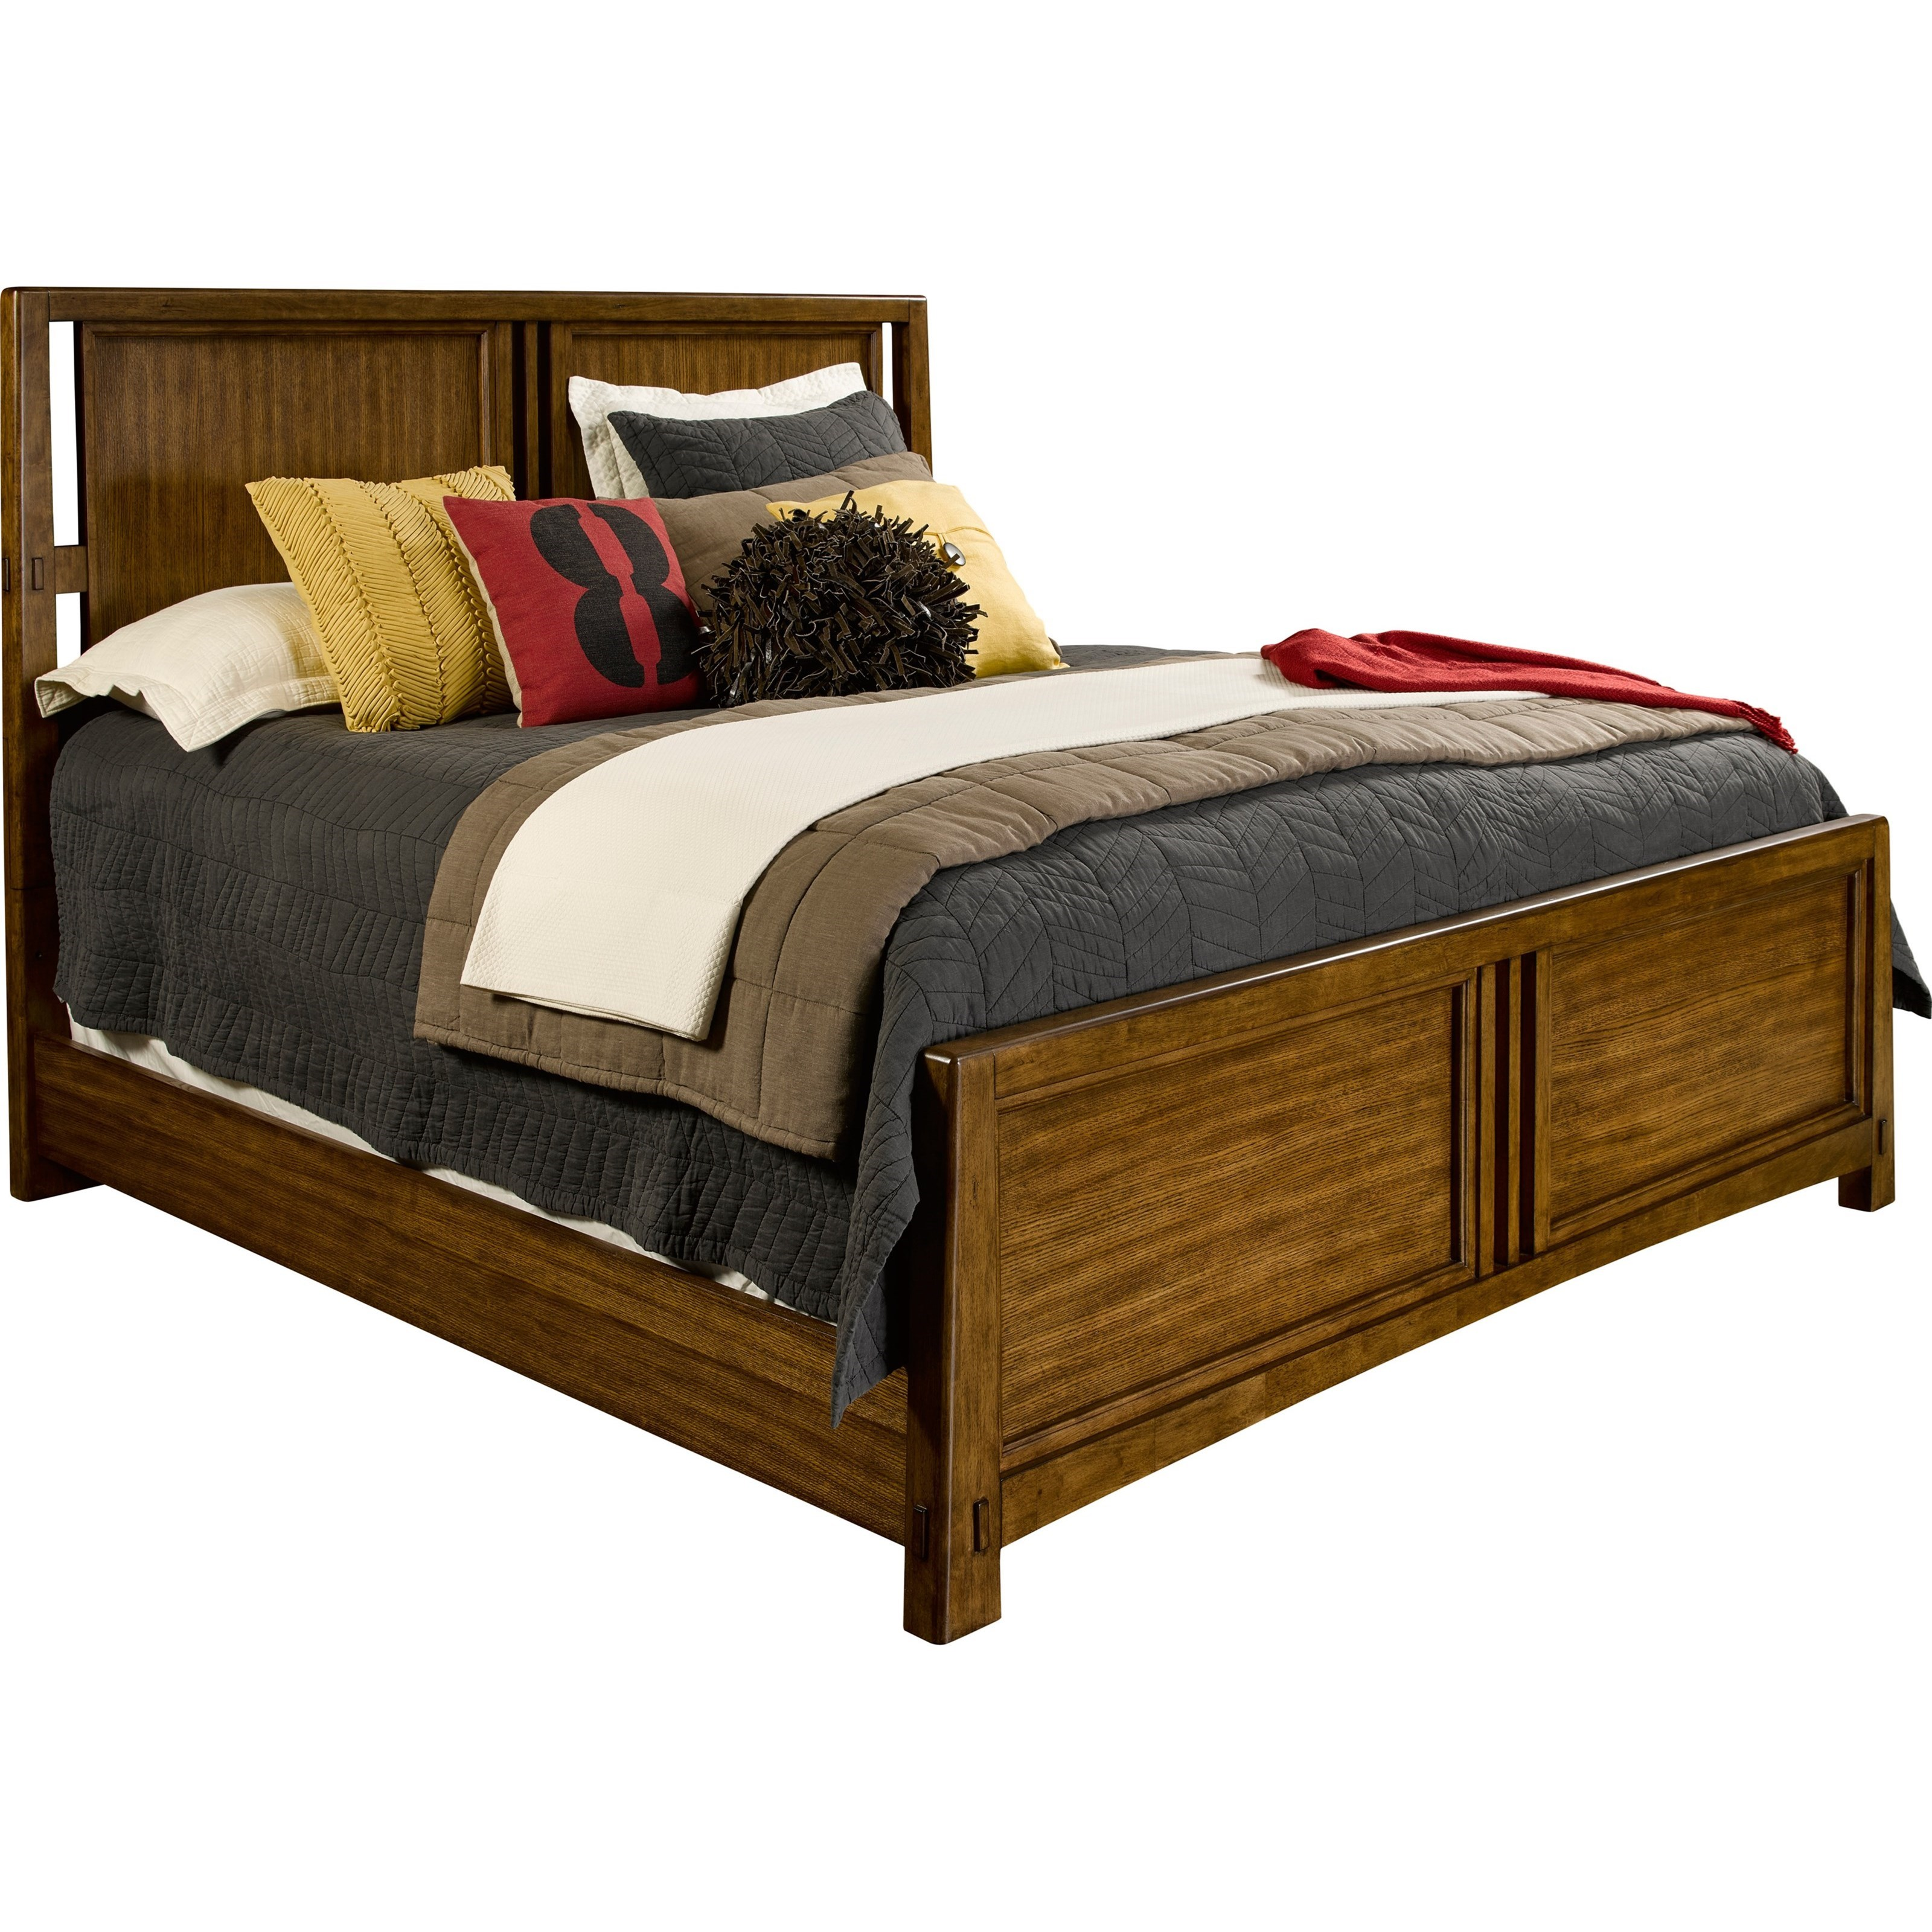 Broyhill Furniture Winslow Park Queen Panel Bed   Item Number: 4604 250+251